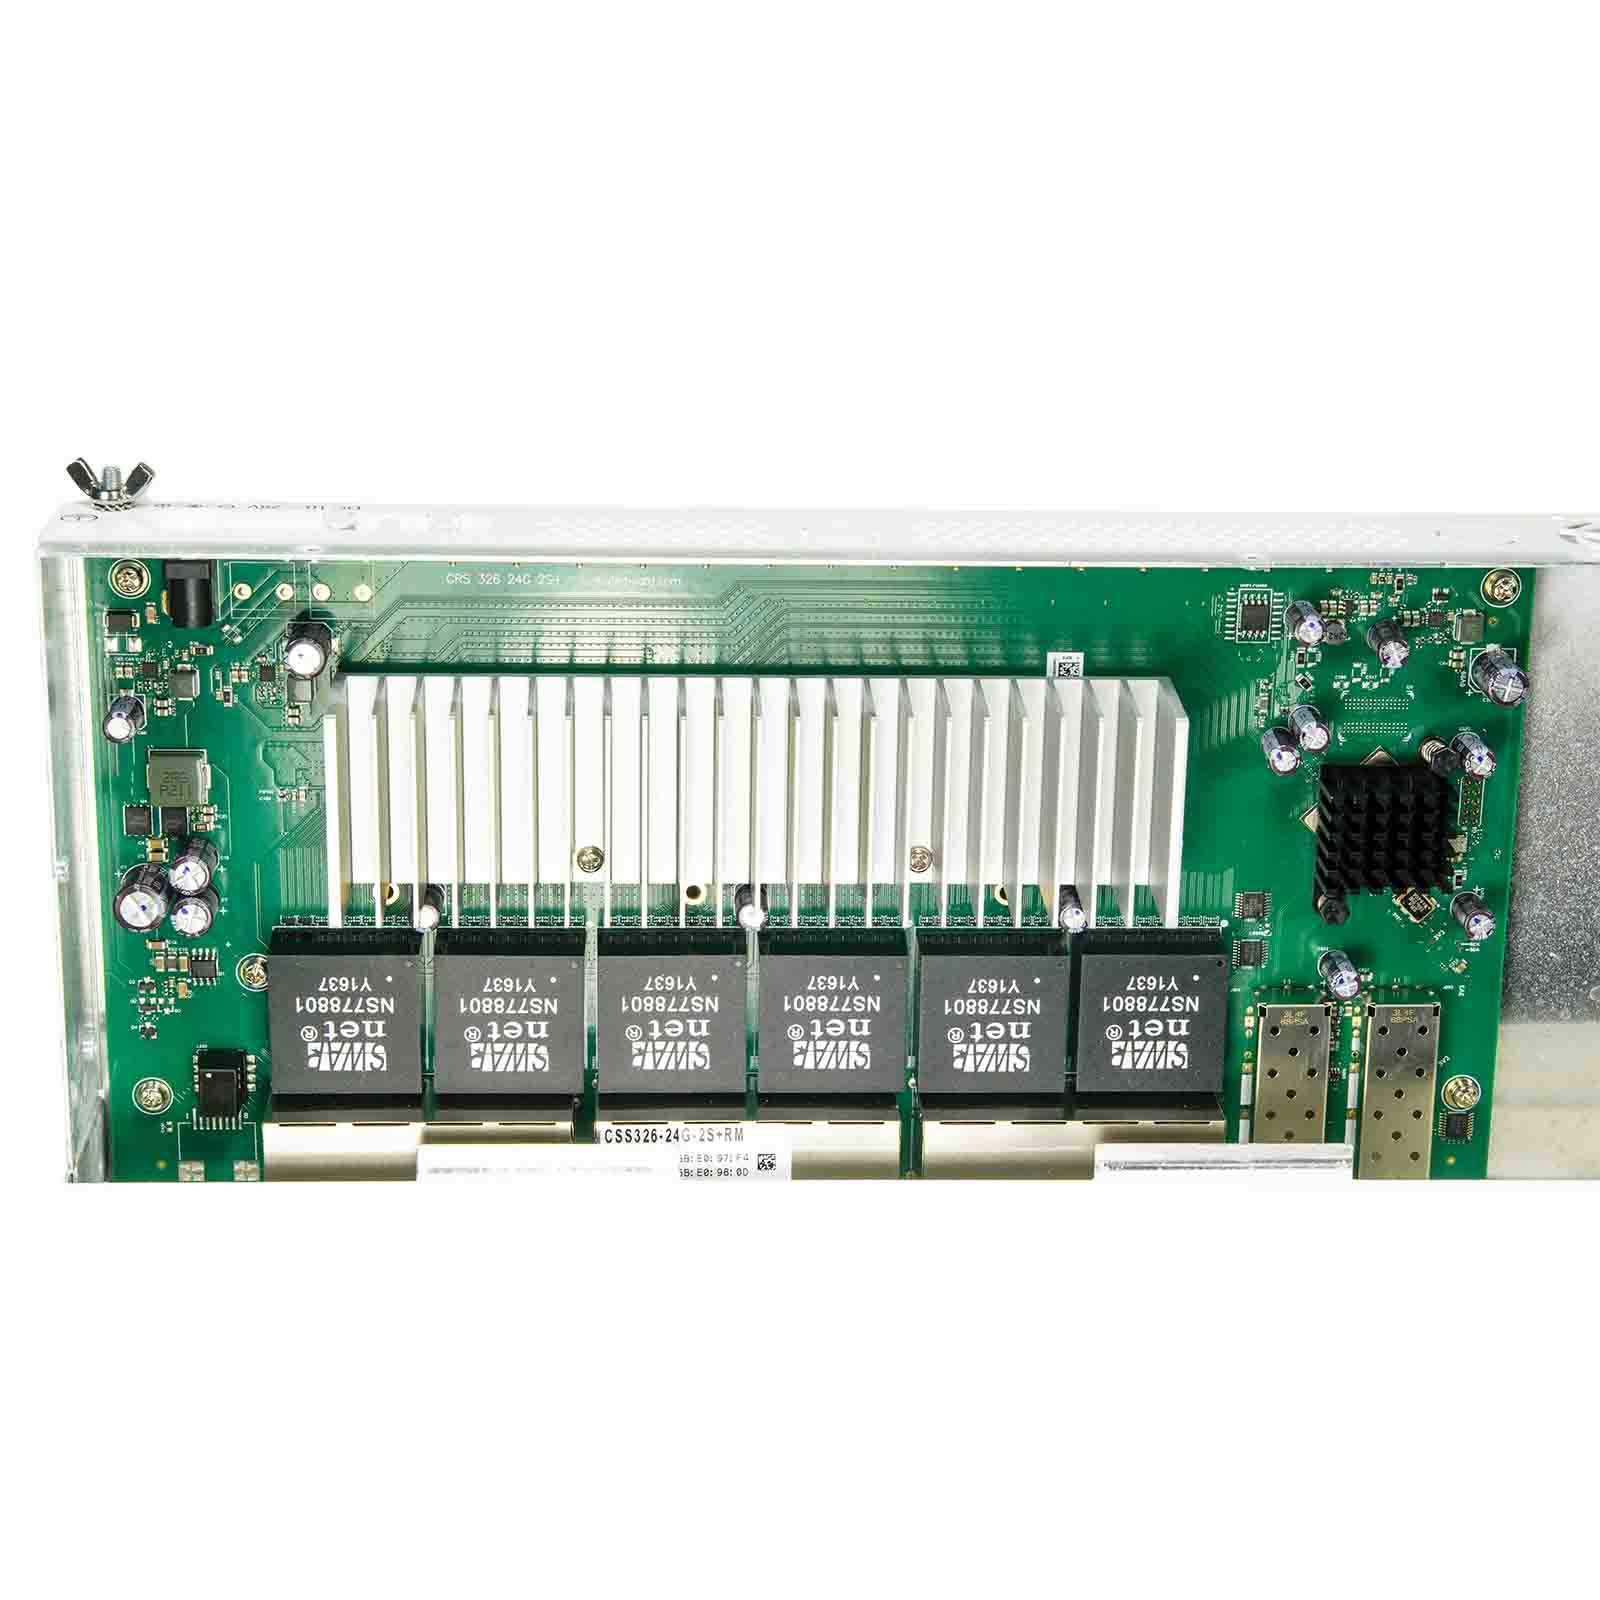 Cloud Smart Switch CSS326-24G-2S+RM